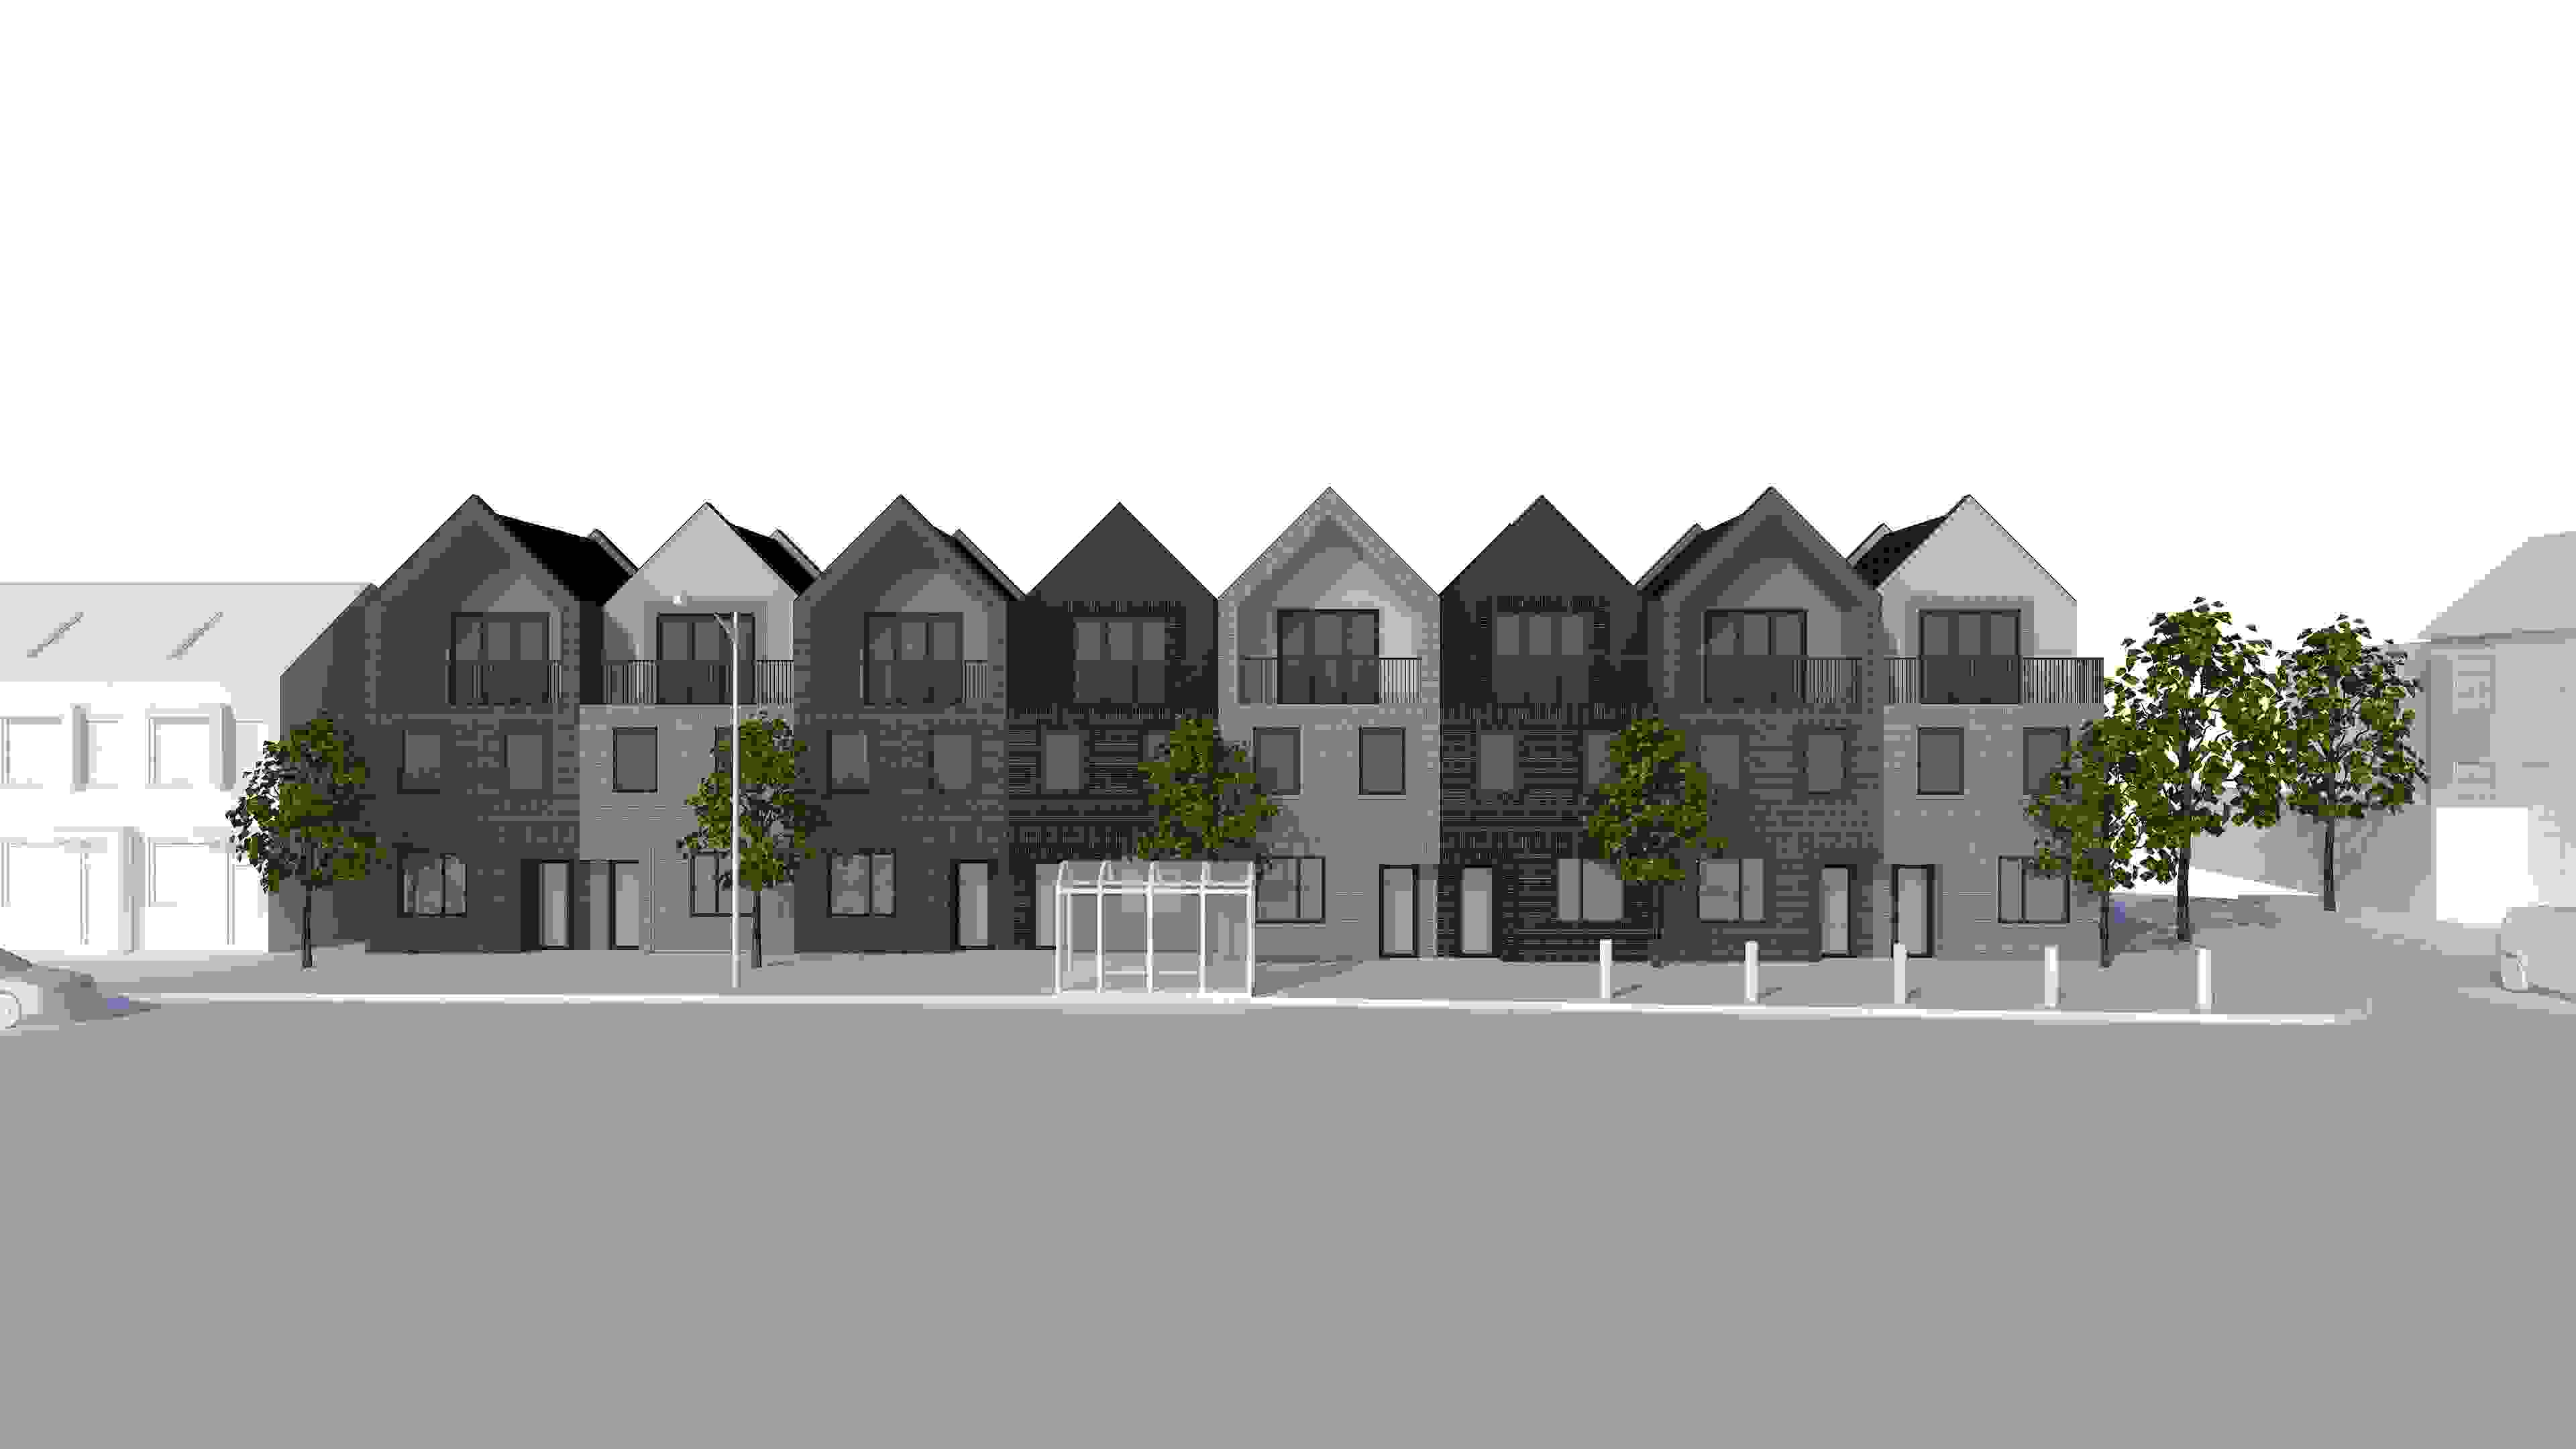 8 New Terraced Houses on 1379-1387 London Road, Leigh on Sea, Essex